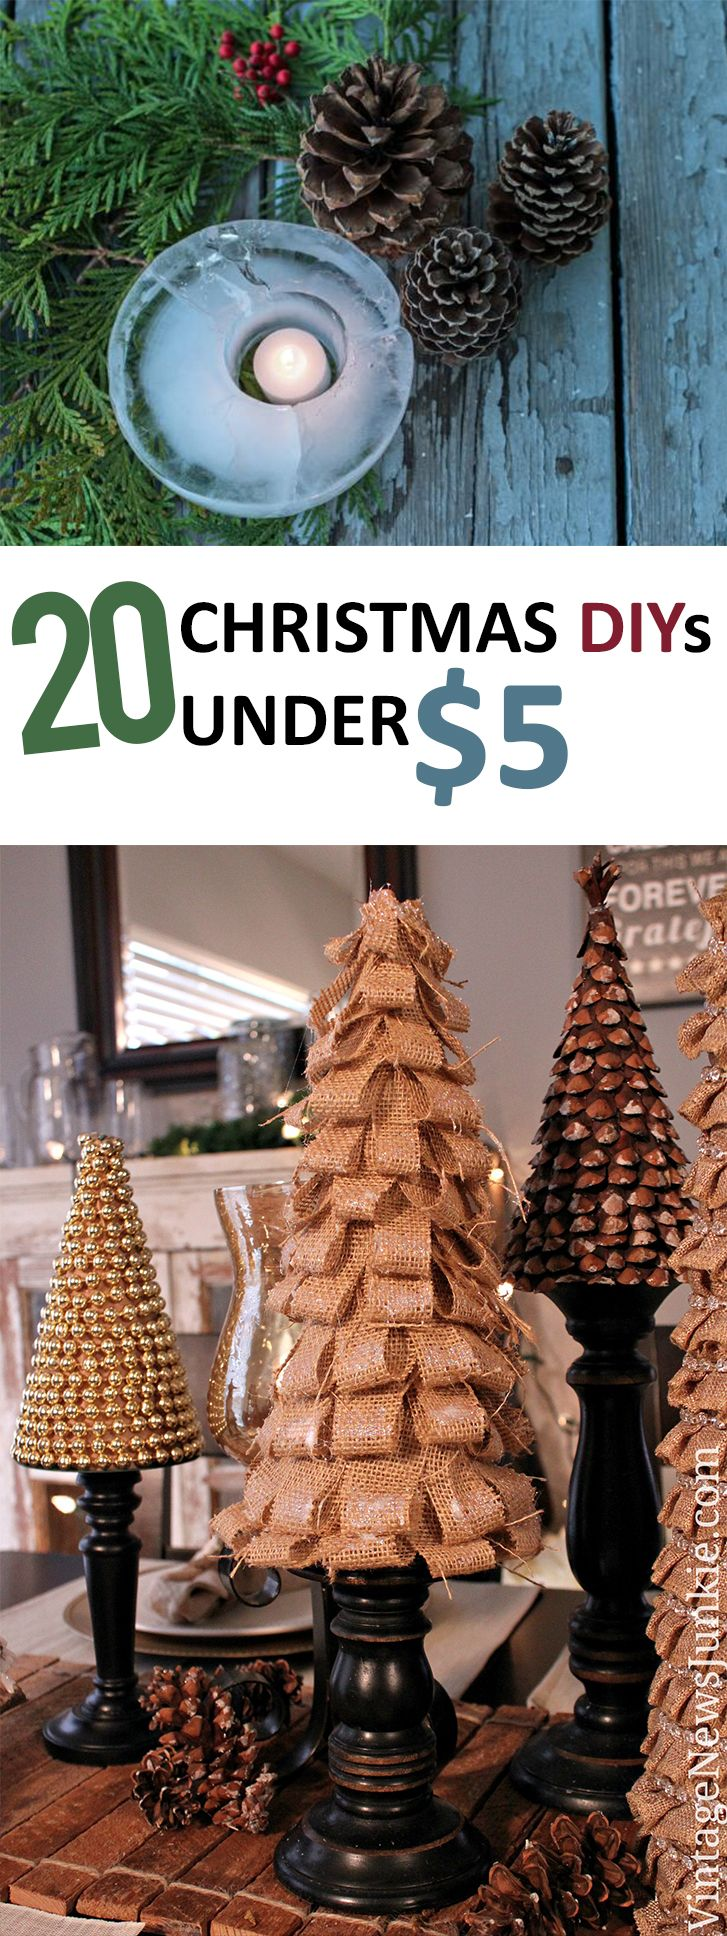 Uncategorized Decorate For Christmas On A Budget 25 unique cheap christmas decorations ideas on pinterest 20 diys under 5